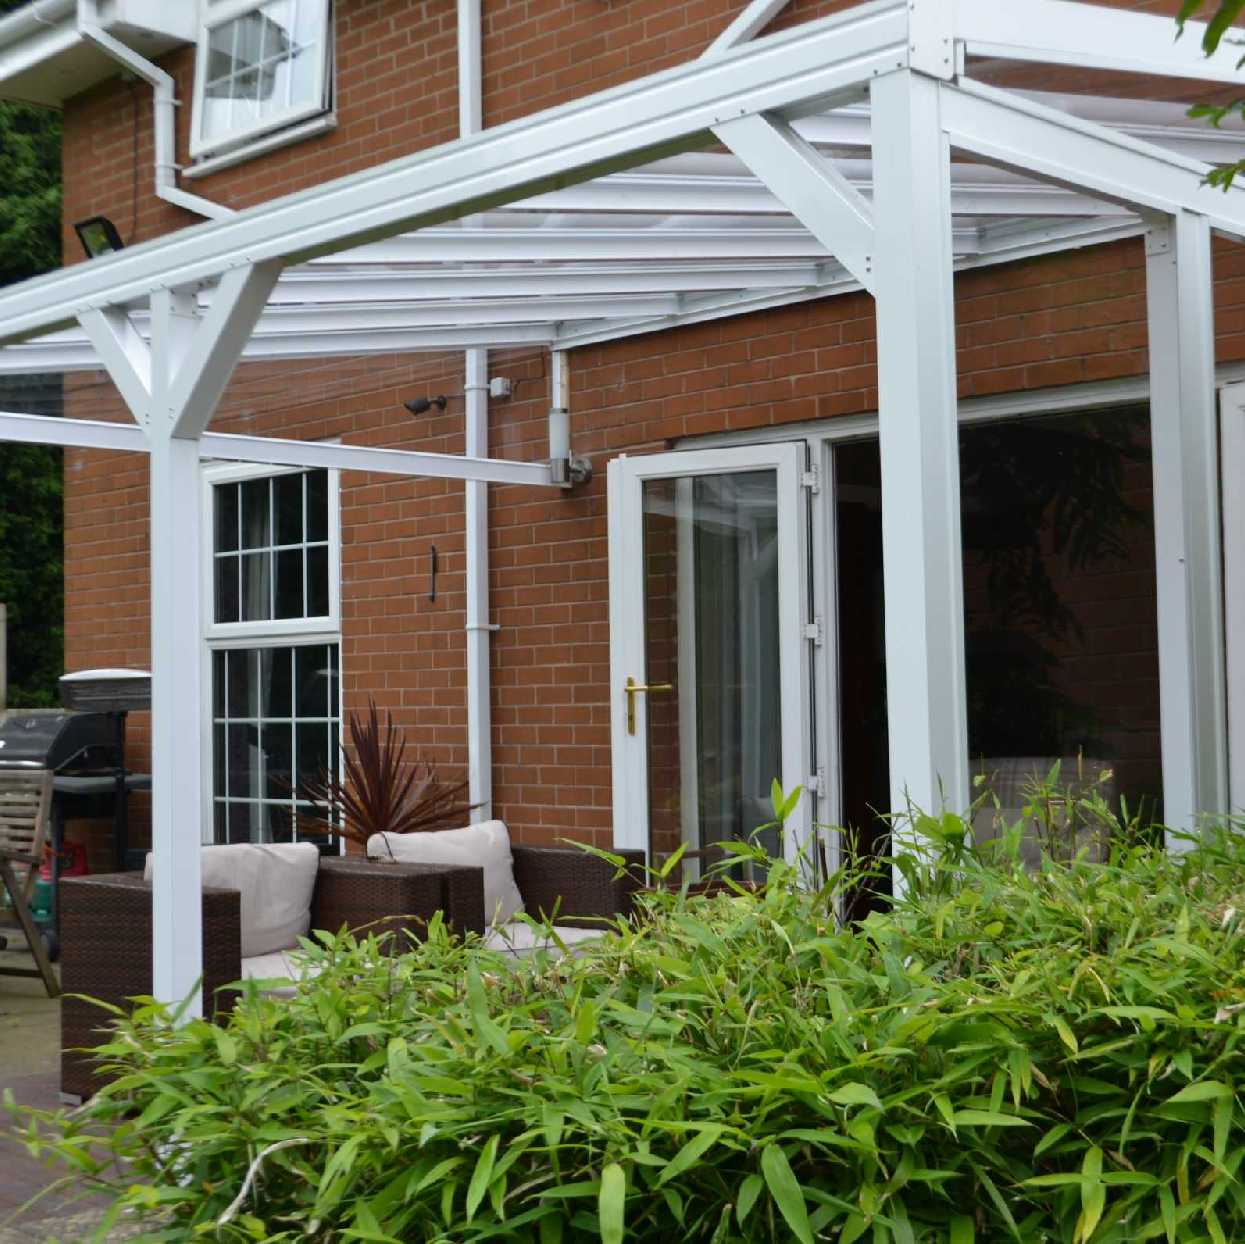 Omega Smart White Lean-To Canopy UNGLAZED for 6mm Glazing - 4.2m (W) x 1.5m (P), (3) Supporting Posts from Omega Build